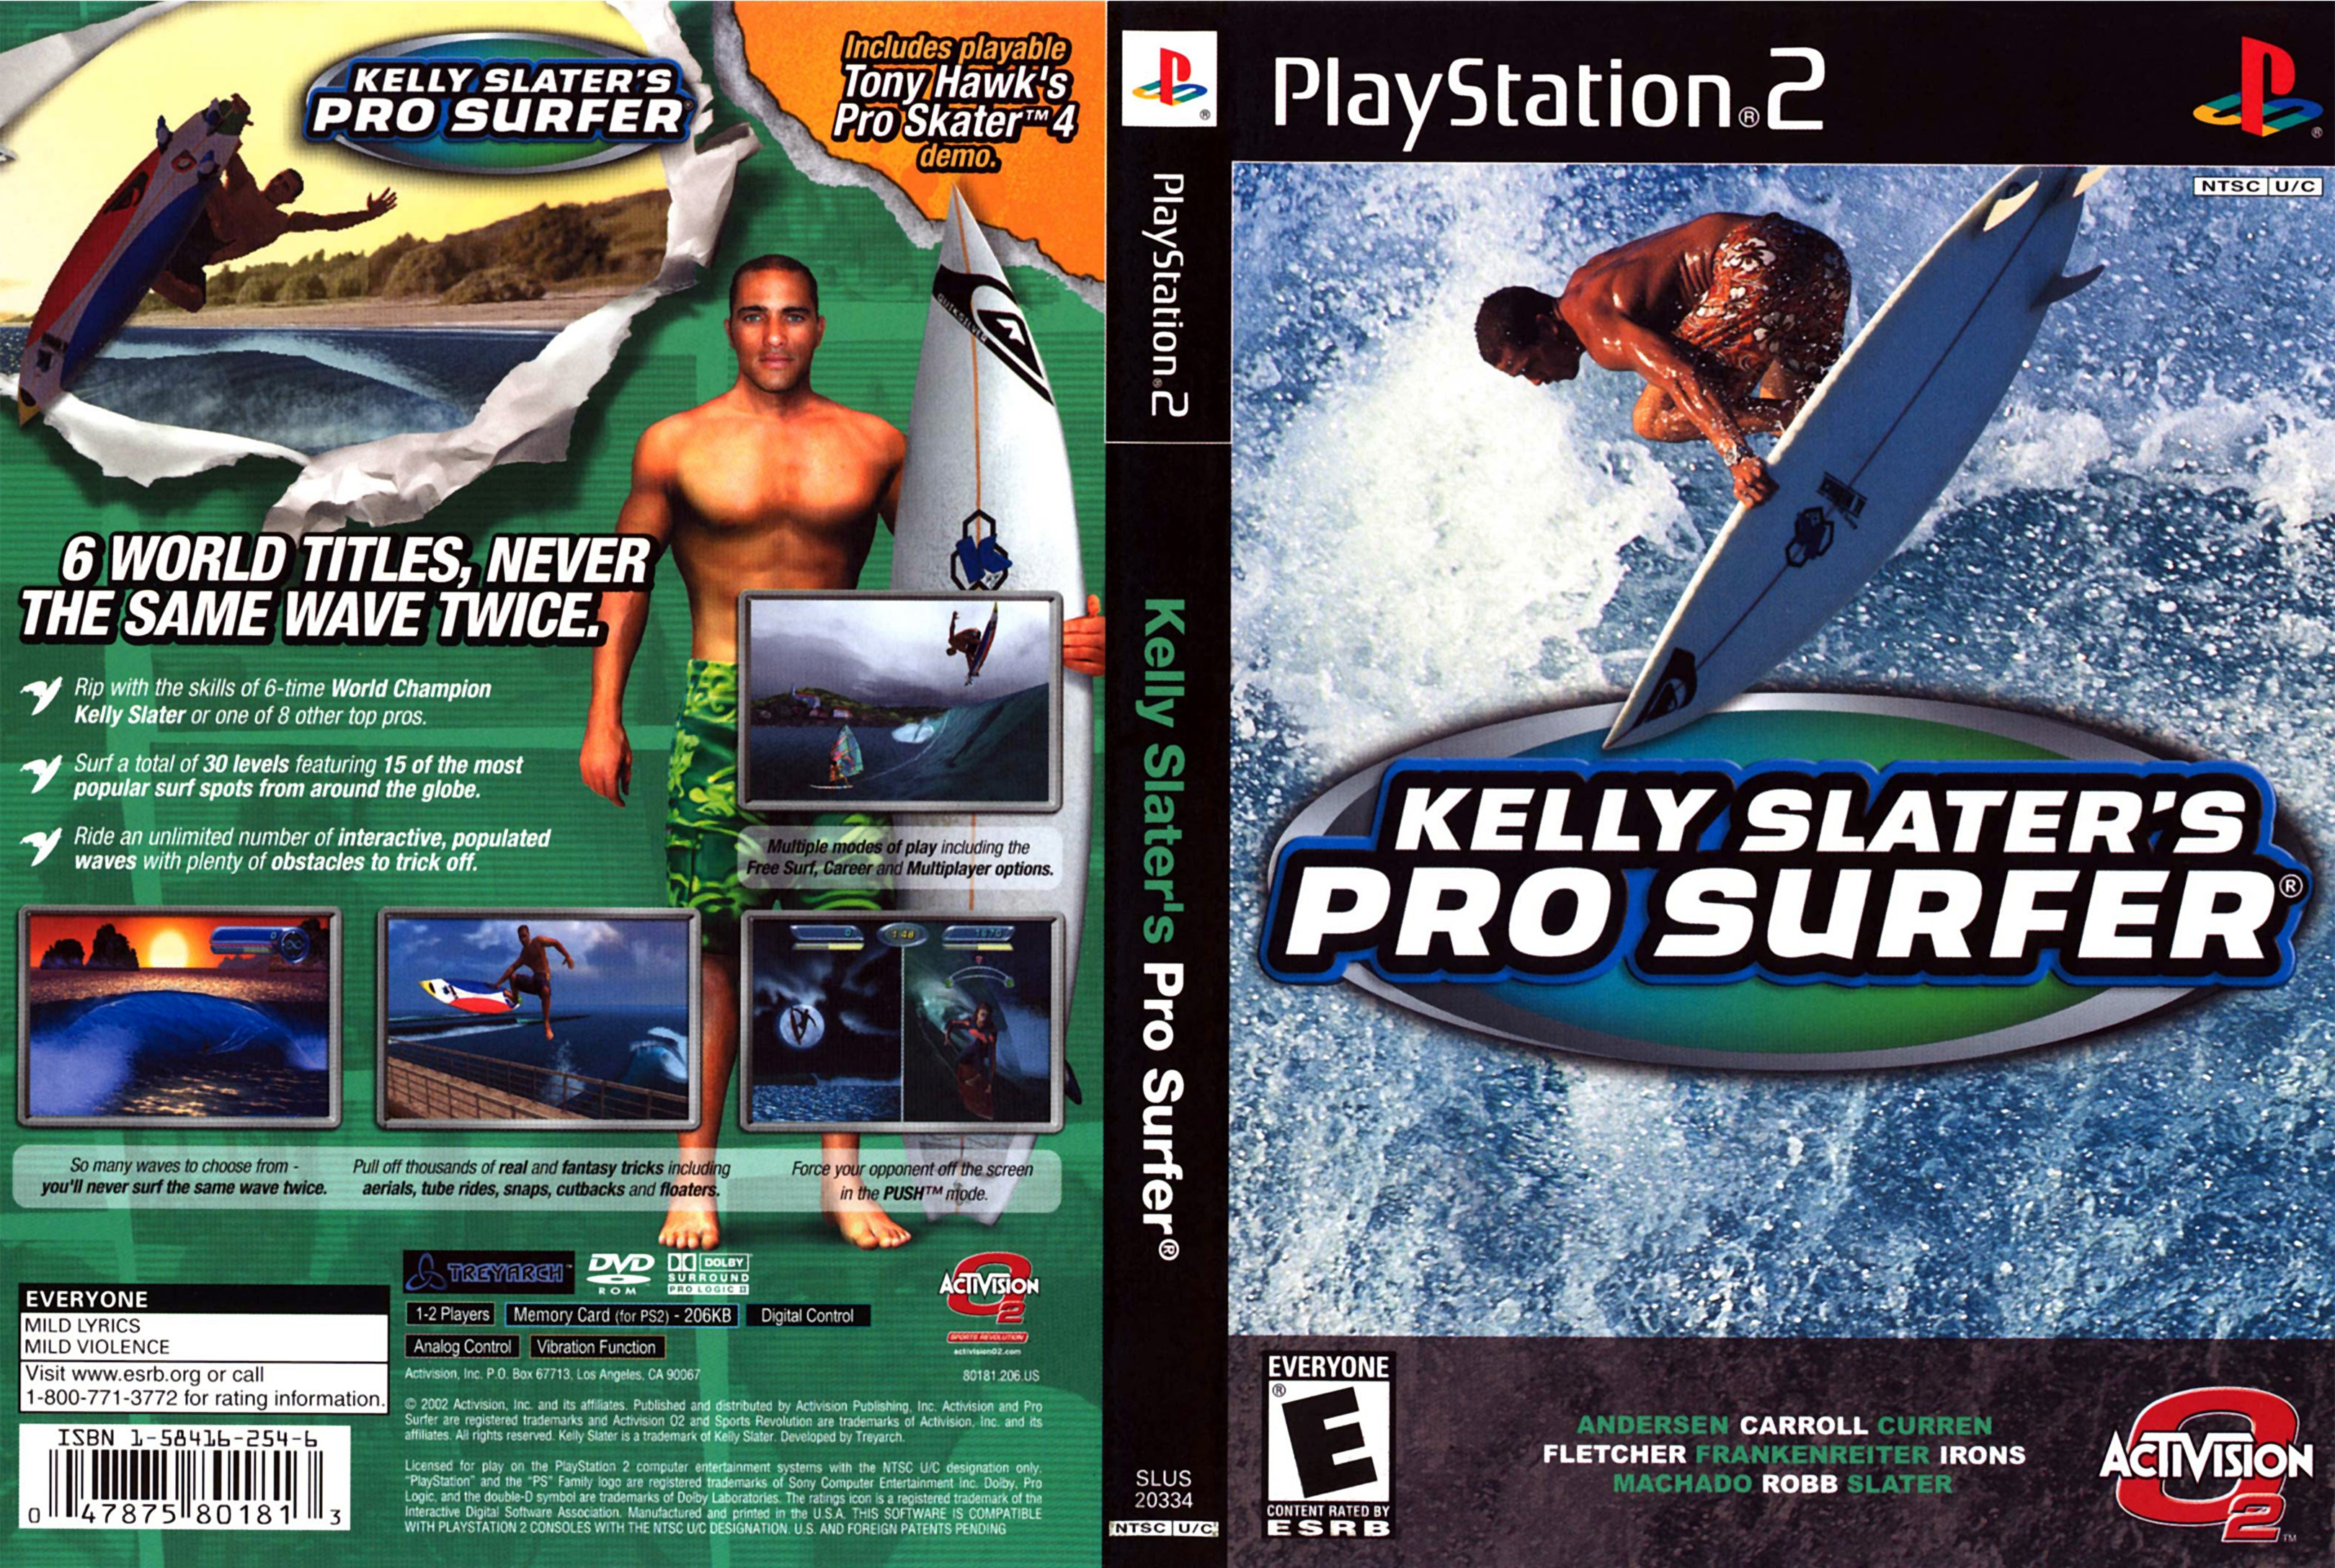 KellySlatersProSurfer